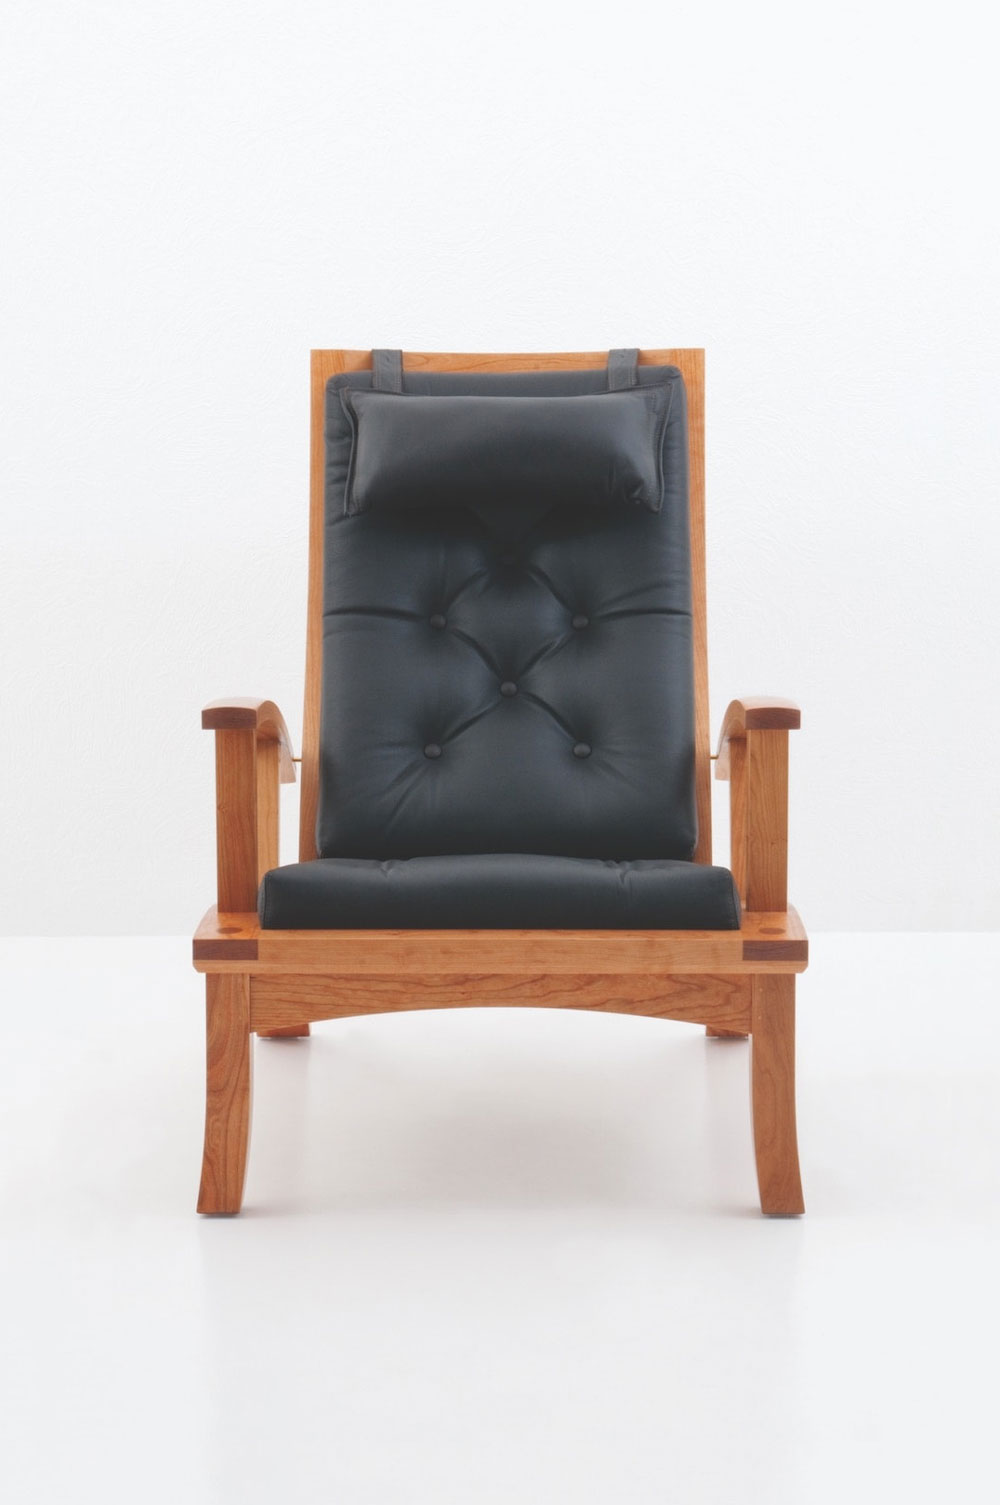 Wood Club Chair Lolling Chair